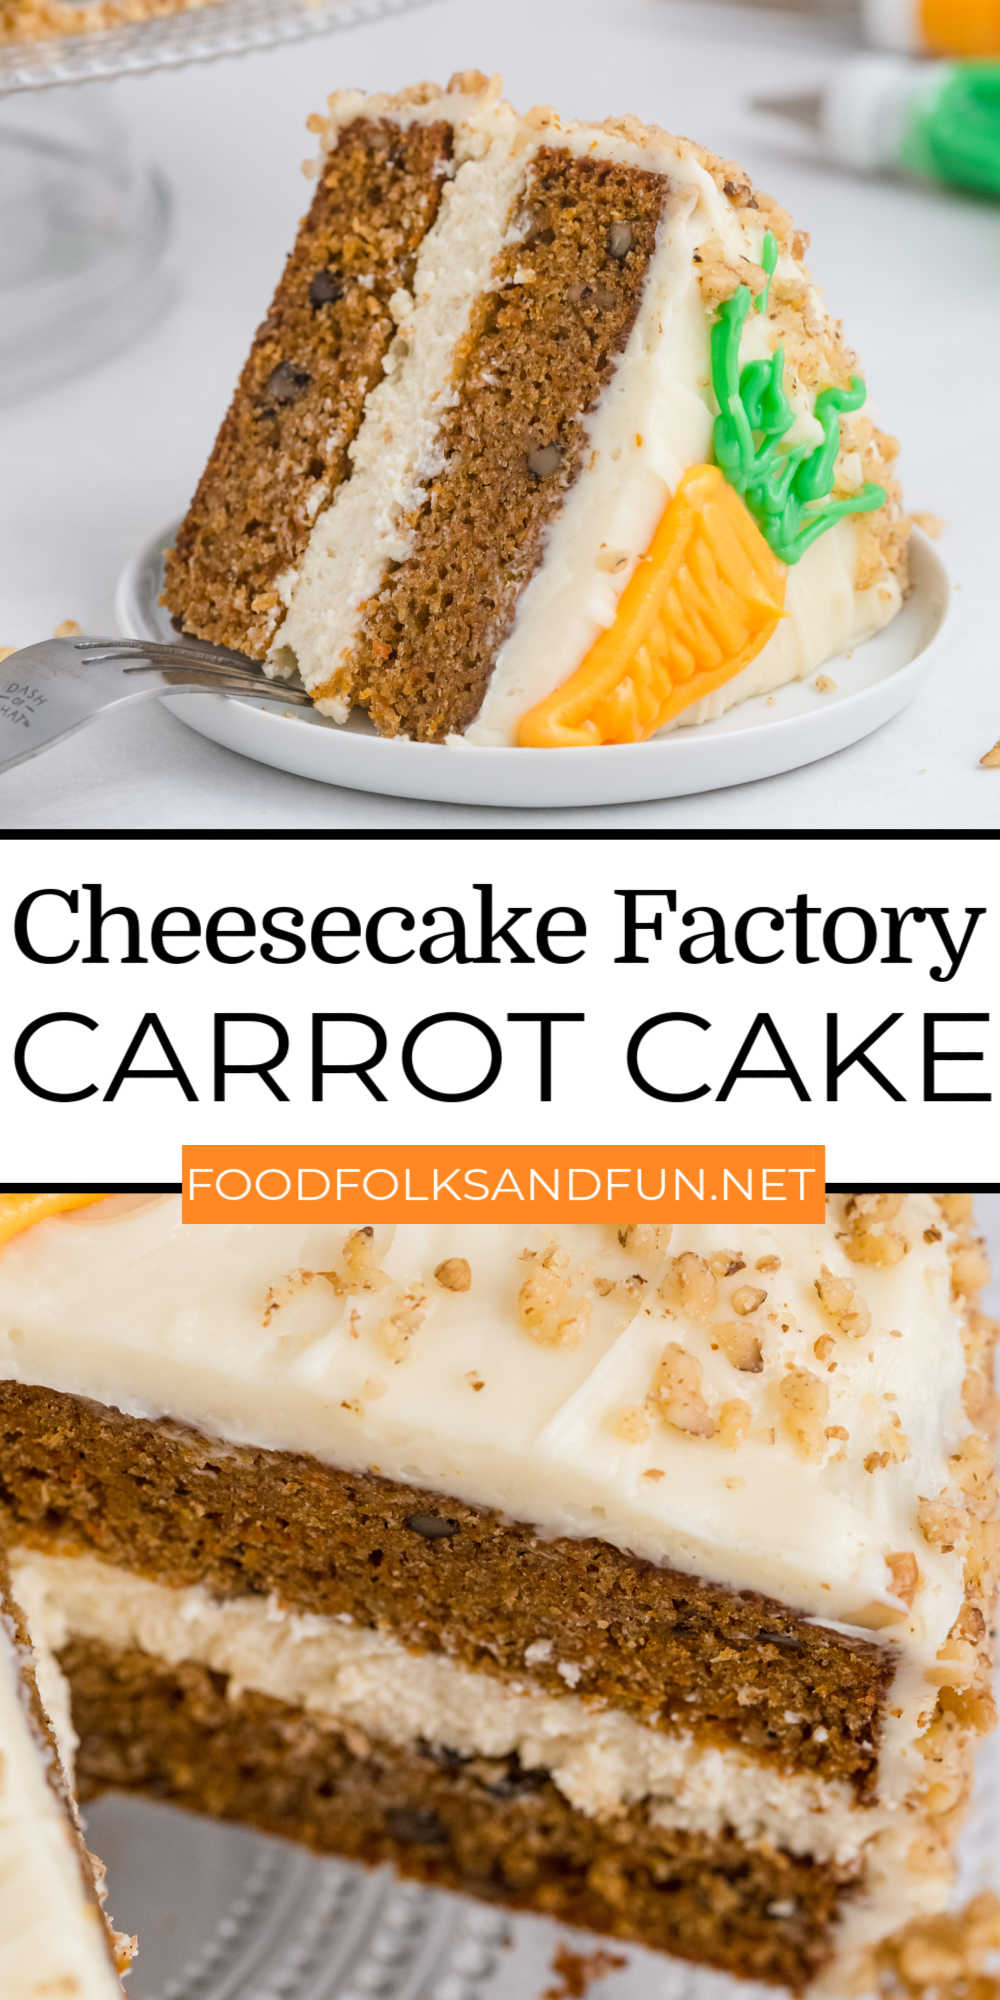 Cheesecake Factory Carrot Cake Cheesecake Copycathas two layers of delicious carrot cake, a layer of cheesecake, and is smothered in the best cream cheese frosting to make one glorious cake! via @foodfolksandfun